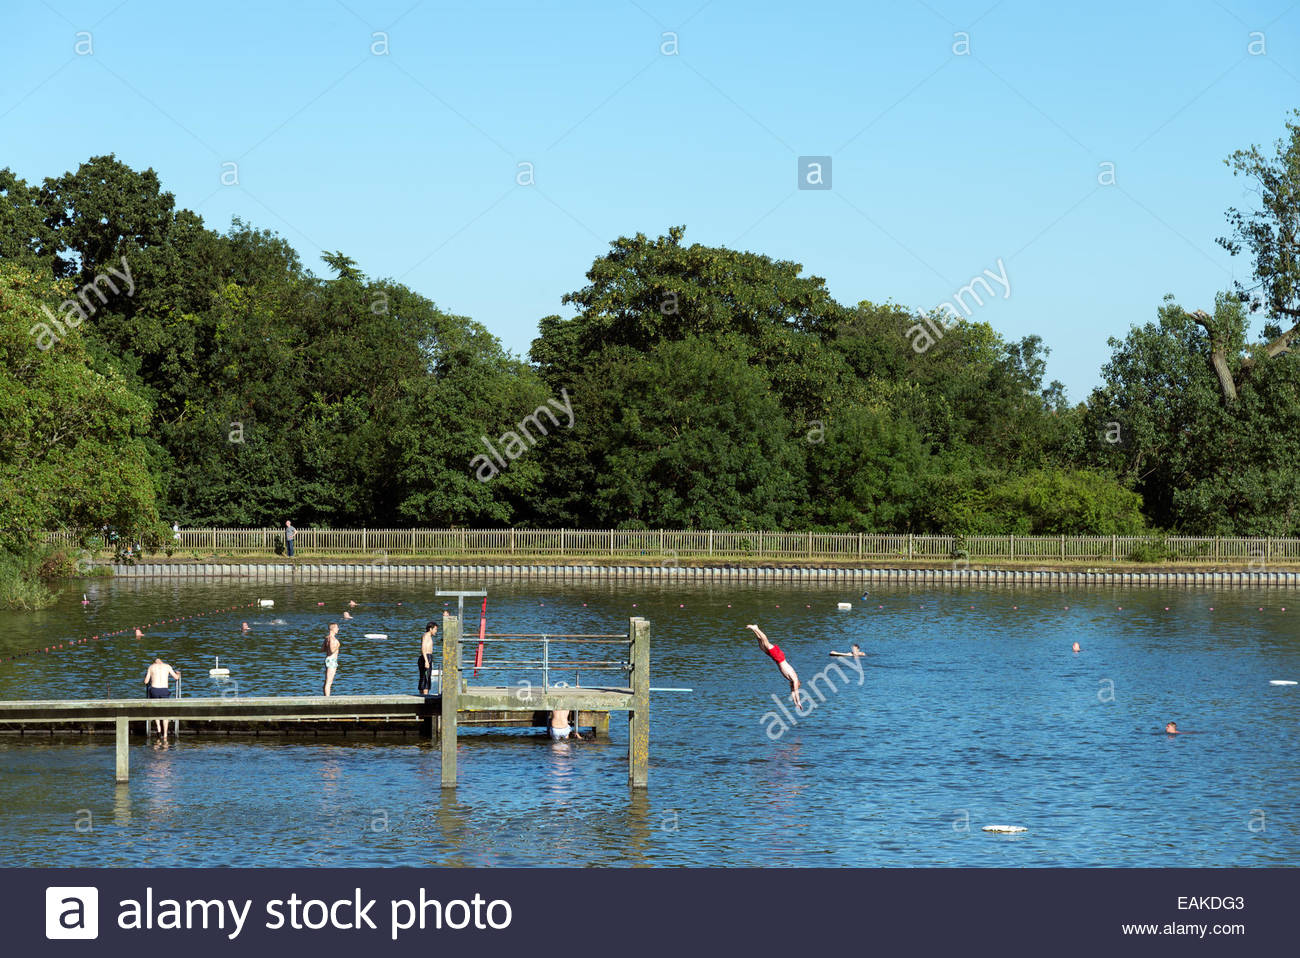 Hampstead ponds stock photos hampstead ponds stock images alamy for A swimming pool is 50m long and 20m wide